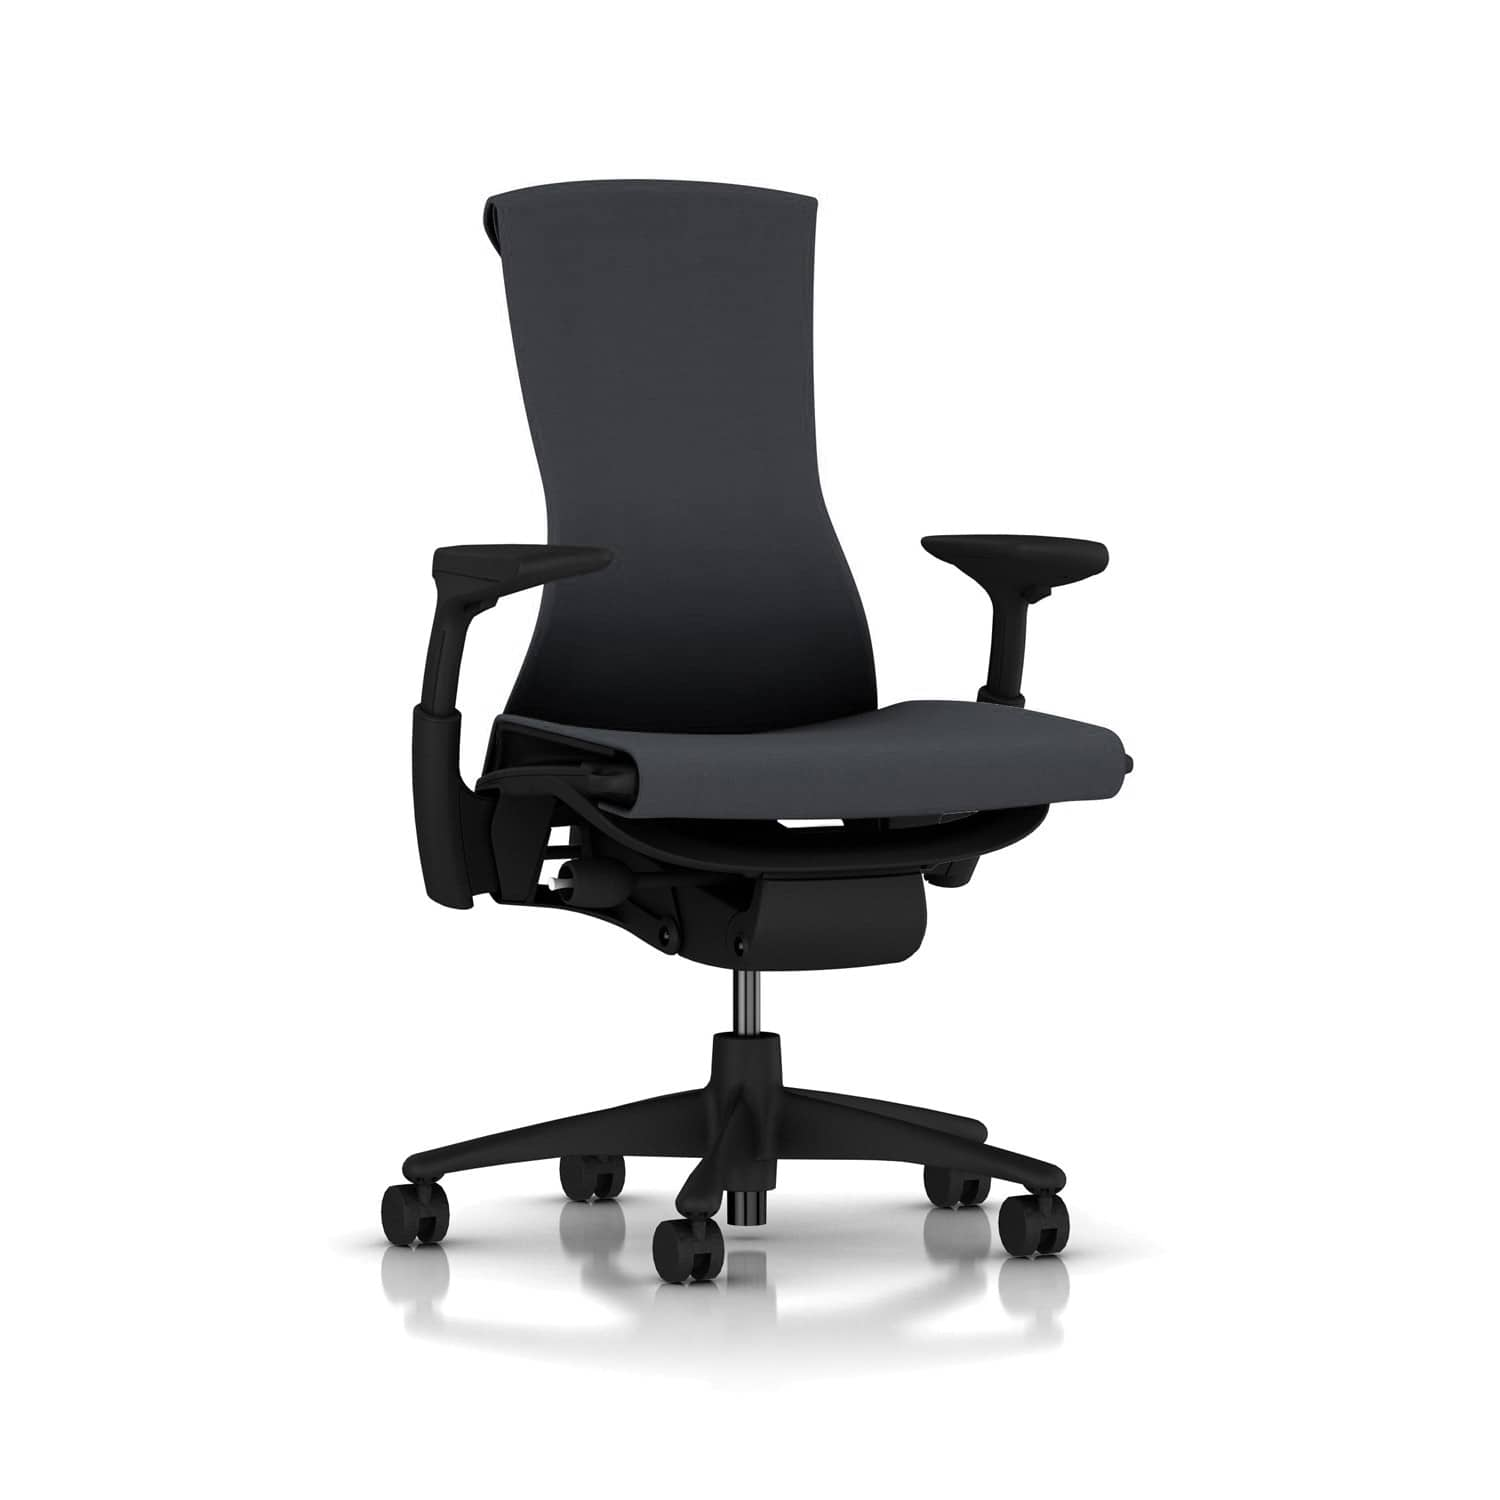 27.4% off Herman Miller - Embody for $843 Delivered. Lowest price ever. Largest Historical Discount Ever on SD (23.5% from 2012) Aeron $535 Delivered (FP Match).